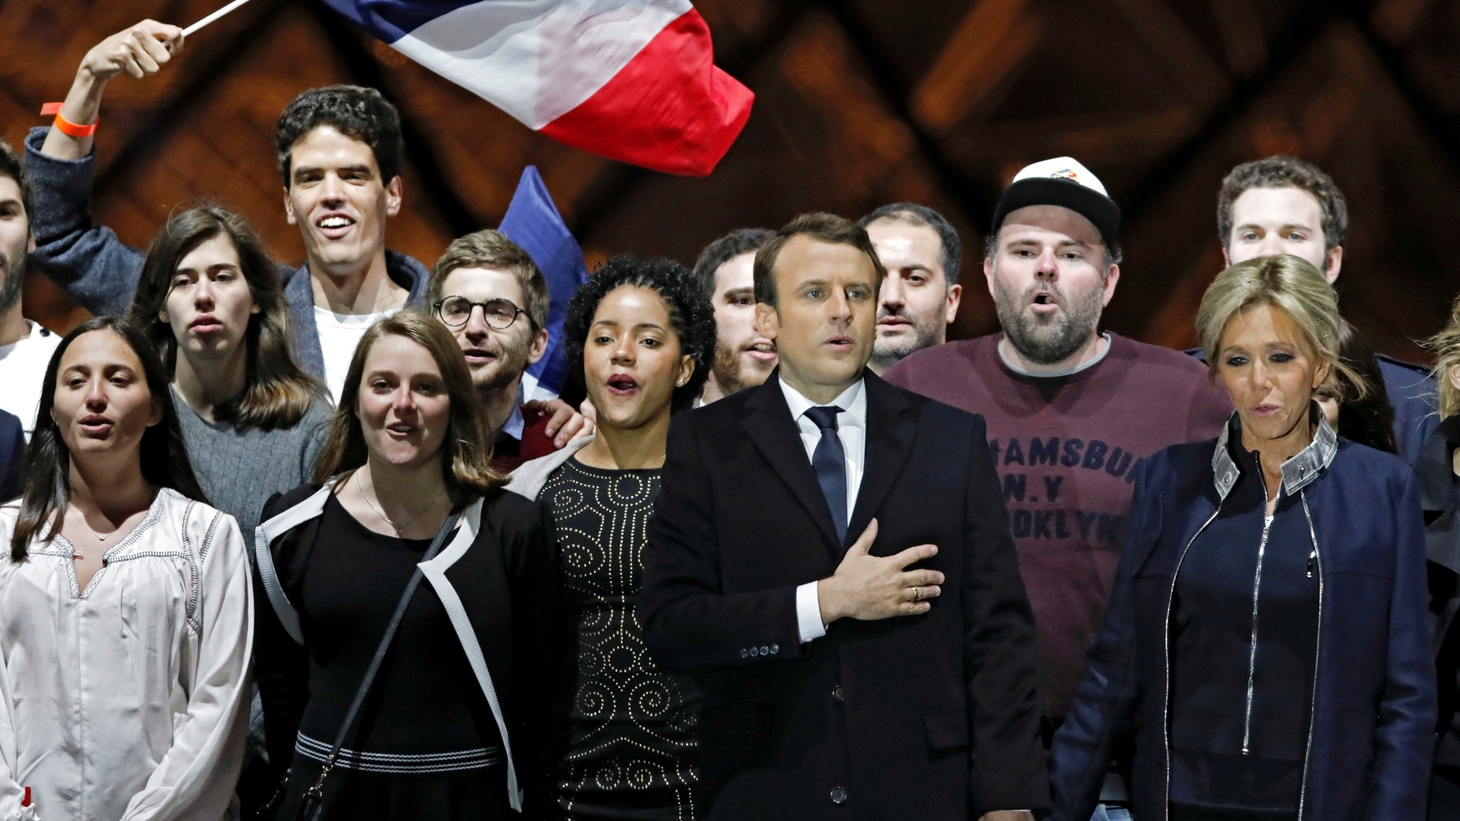 Emmanuel Macron won yesterday's election over Marine Le Pen, but nationalist populism is alive and well — in France and elsewhere in the European Union.